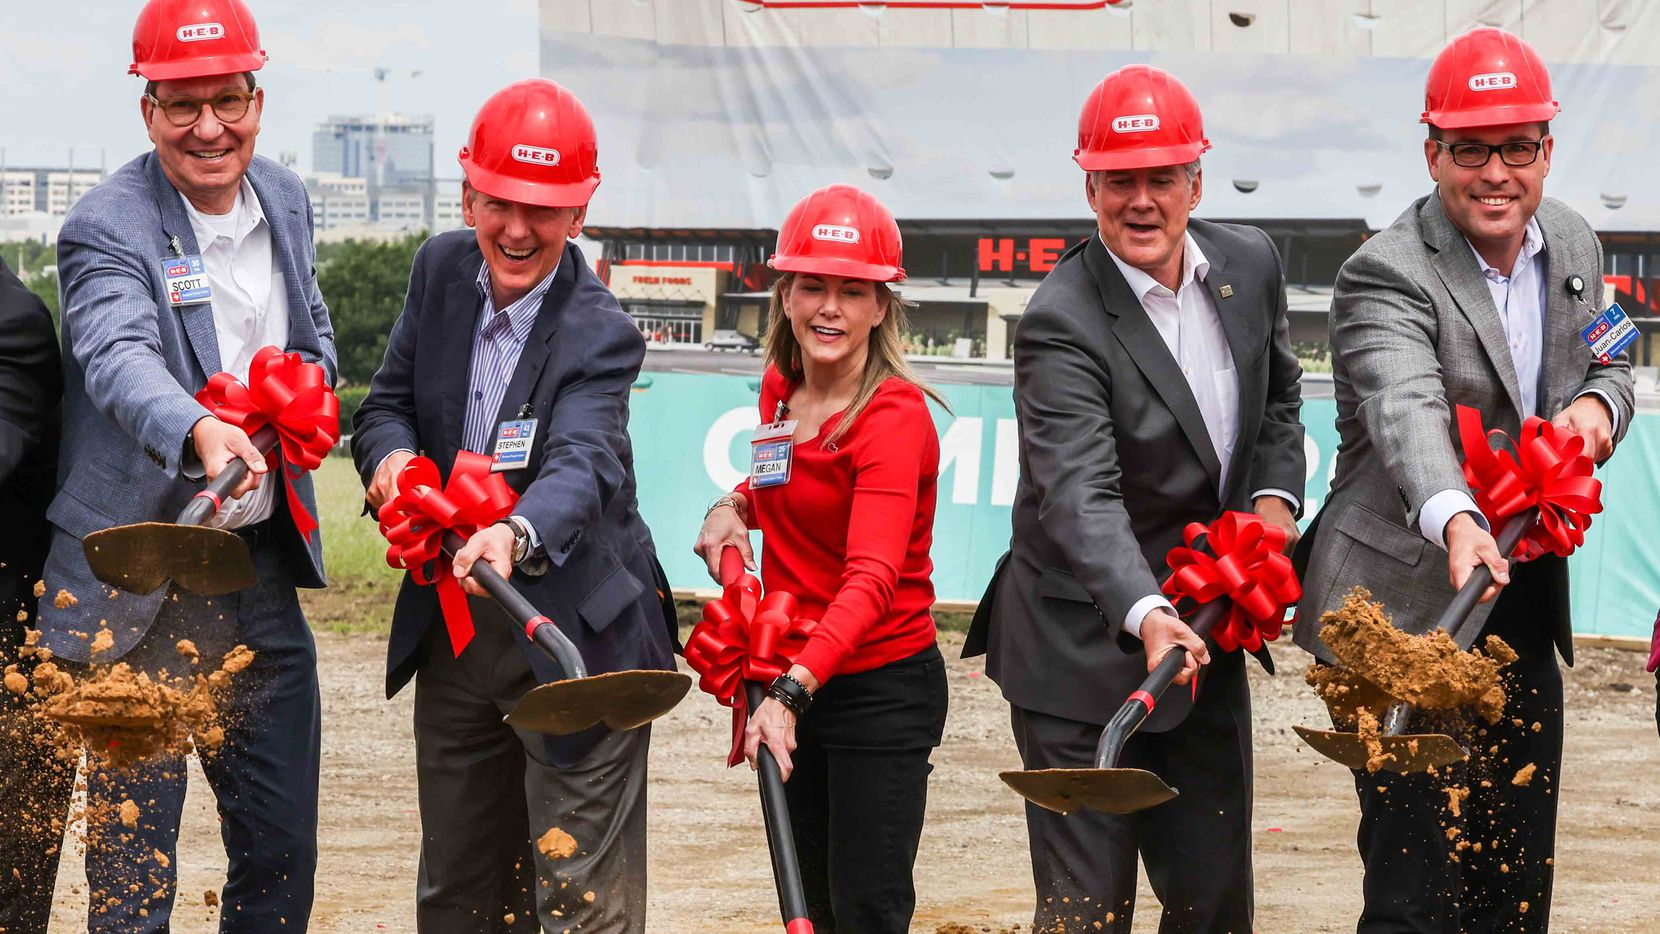 from left, H-E-B president food/drug Scott McClelland, Central Market president Stephen Butt, Megan Rooney, H-E-B chief financial officer, Plano Mayor John Muns, and Executive vice president Juan-Carlos Rück during the groundbreaking ceremony for the Plano H-E-B store on Friday, June 4, 2021, that is planned to open in fall 2022.